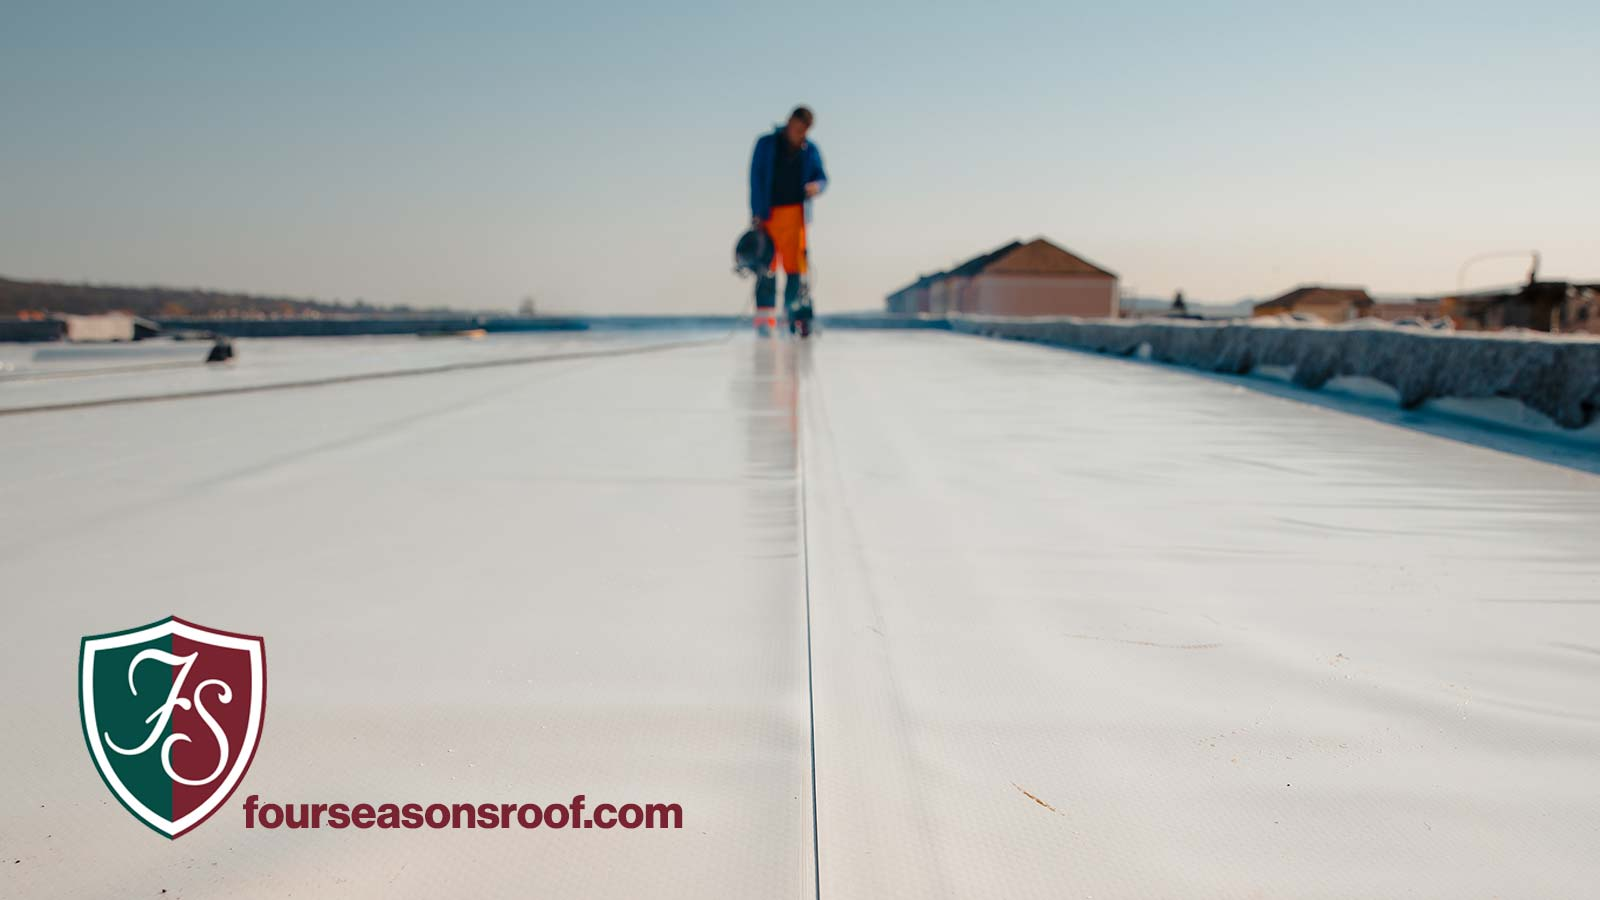 When your roof isn't steep enough to use shingles, you have a 'low slope' roof. So what are your options?